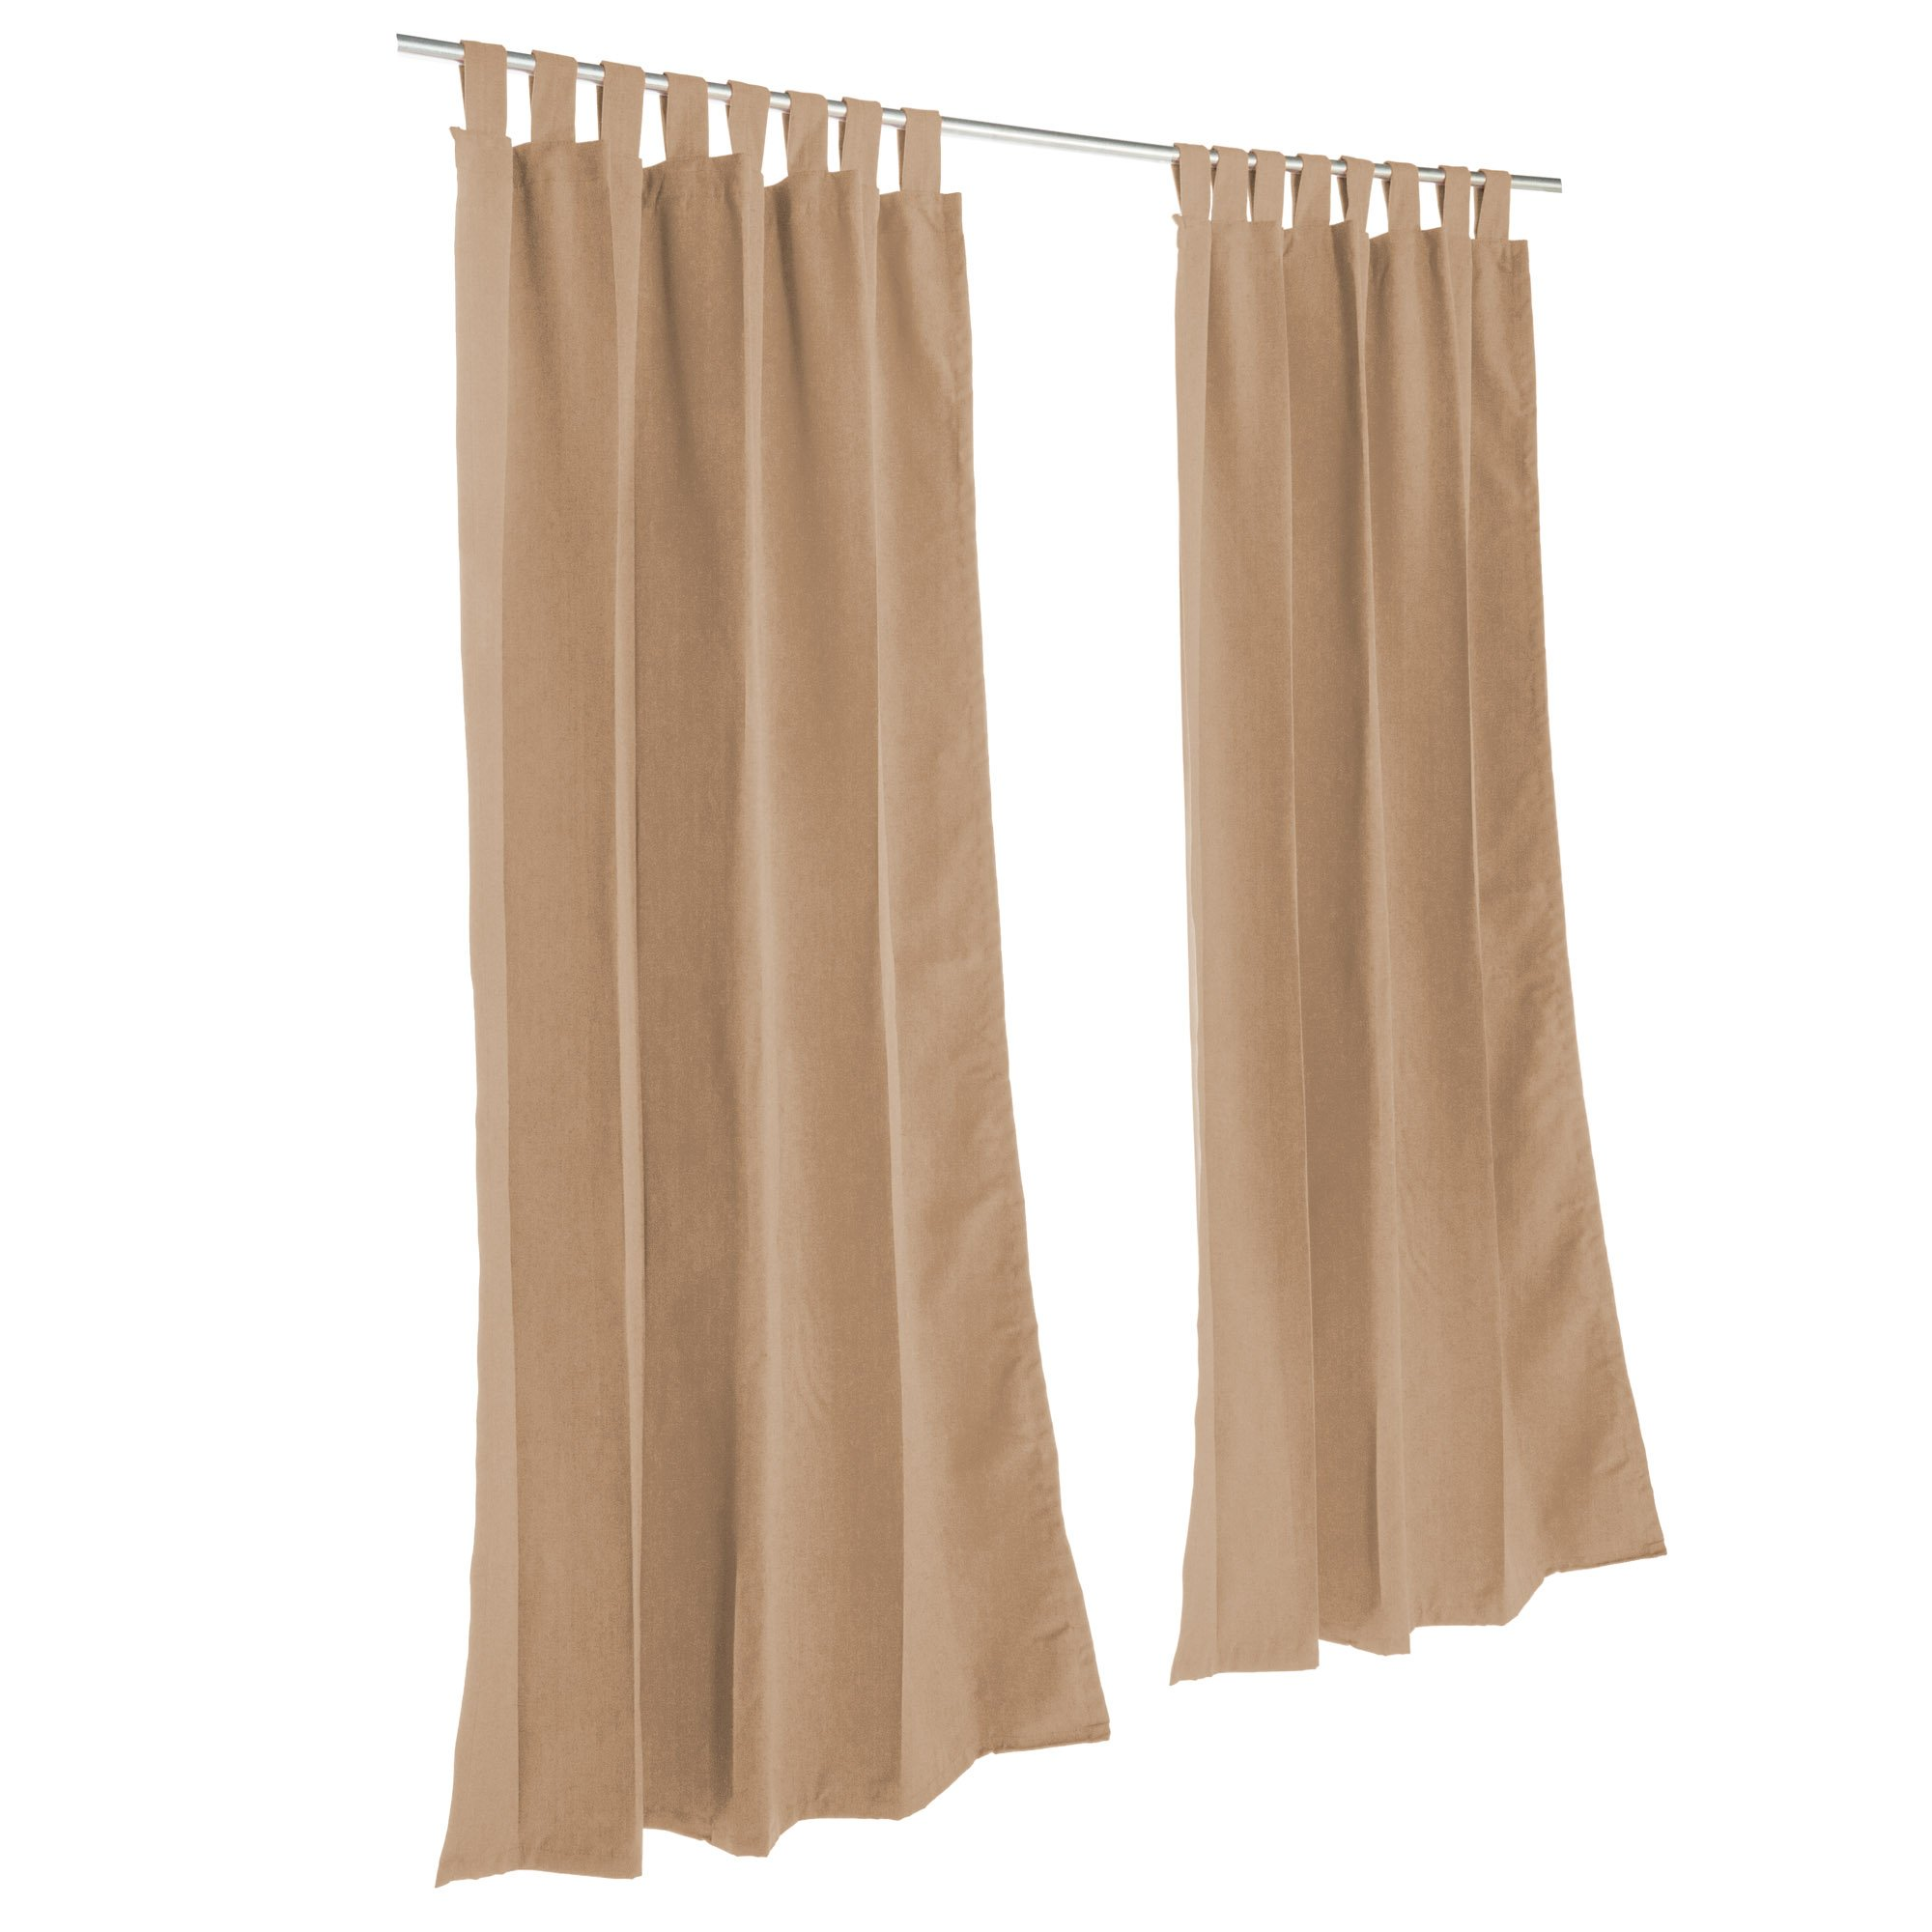 Pawleys Island Sunbrella Outdoor Gazebo Tabbed Solid Curtain Panel Canvas Cocoa 50'' x 120'' by Pawley's Island